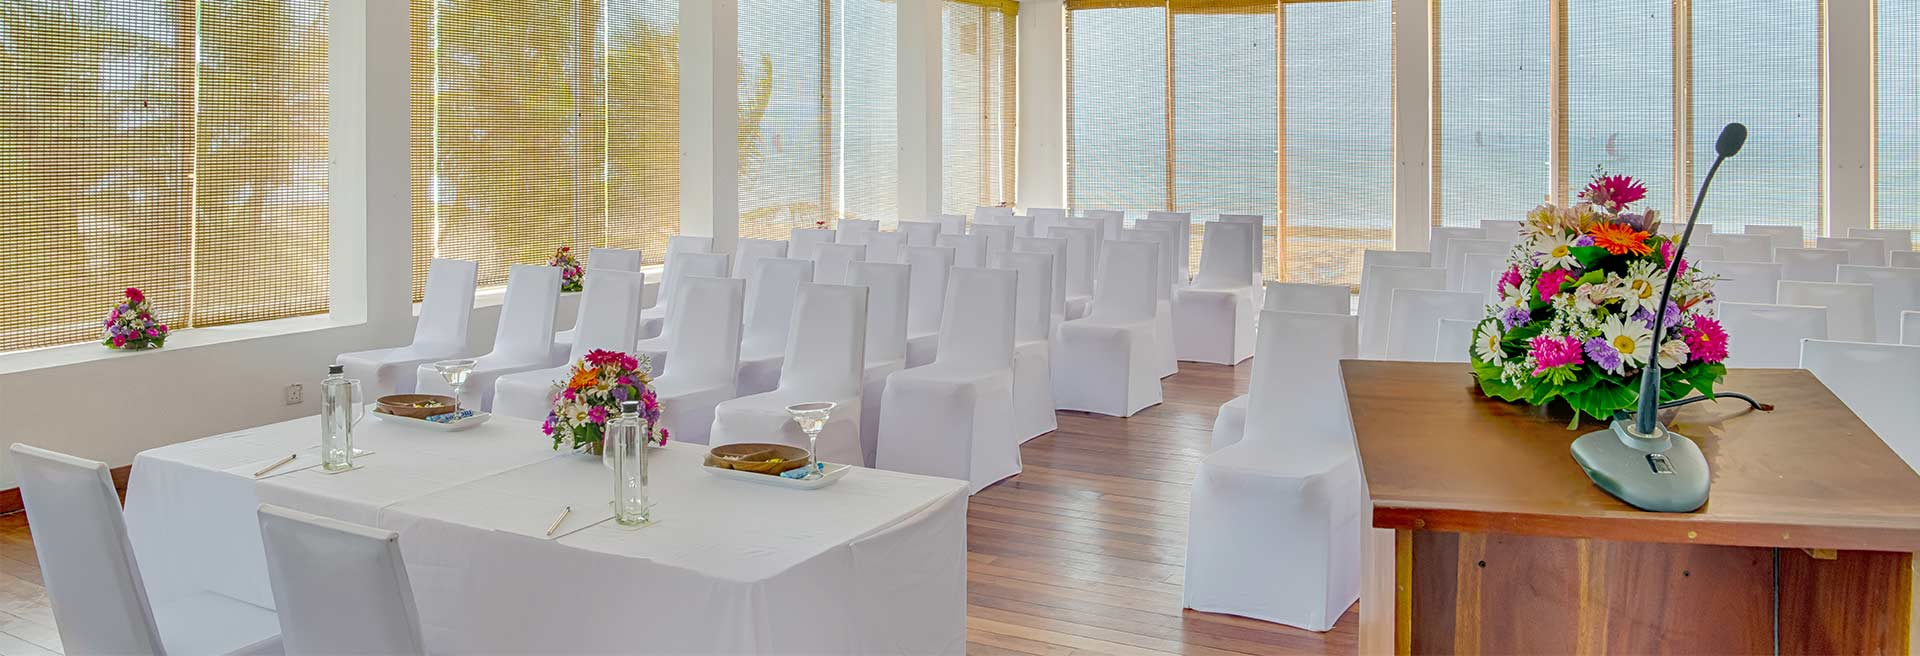 Conference room at Jetwing Sea